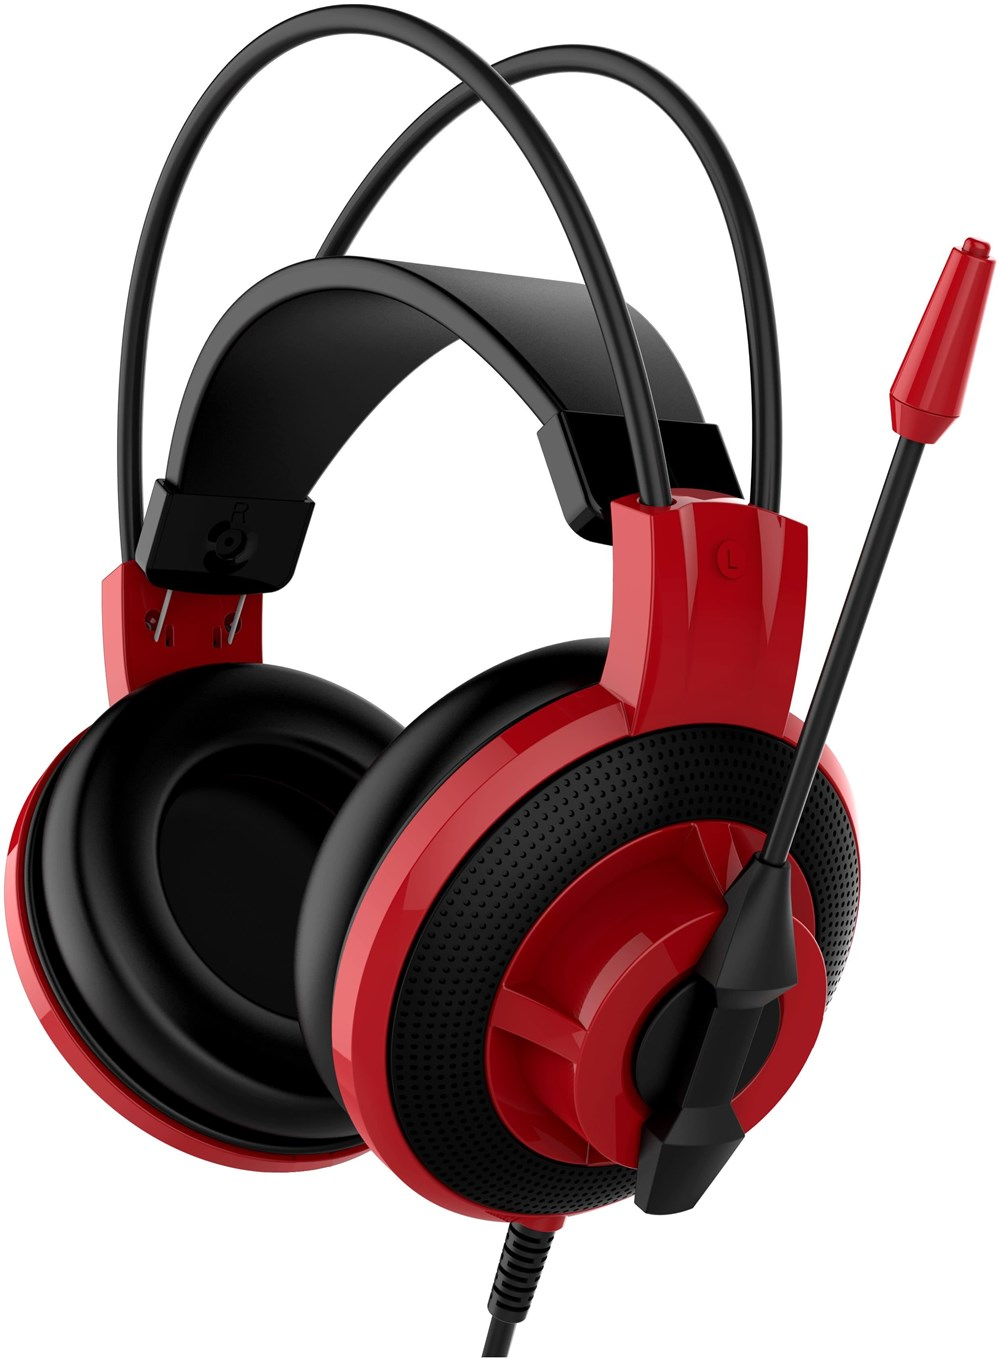 MSI DS501 Gaming Headset S37-2100920-SV1